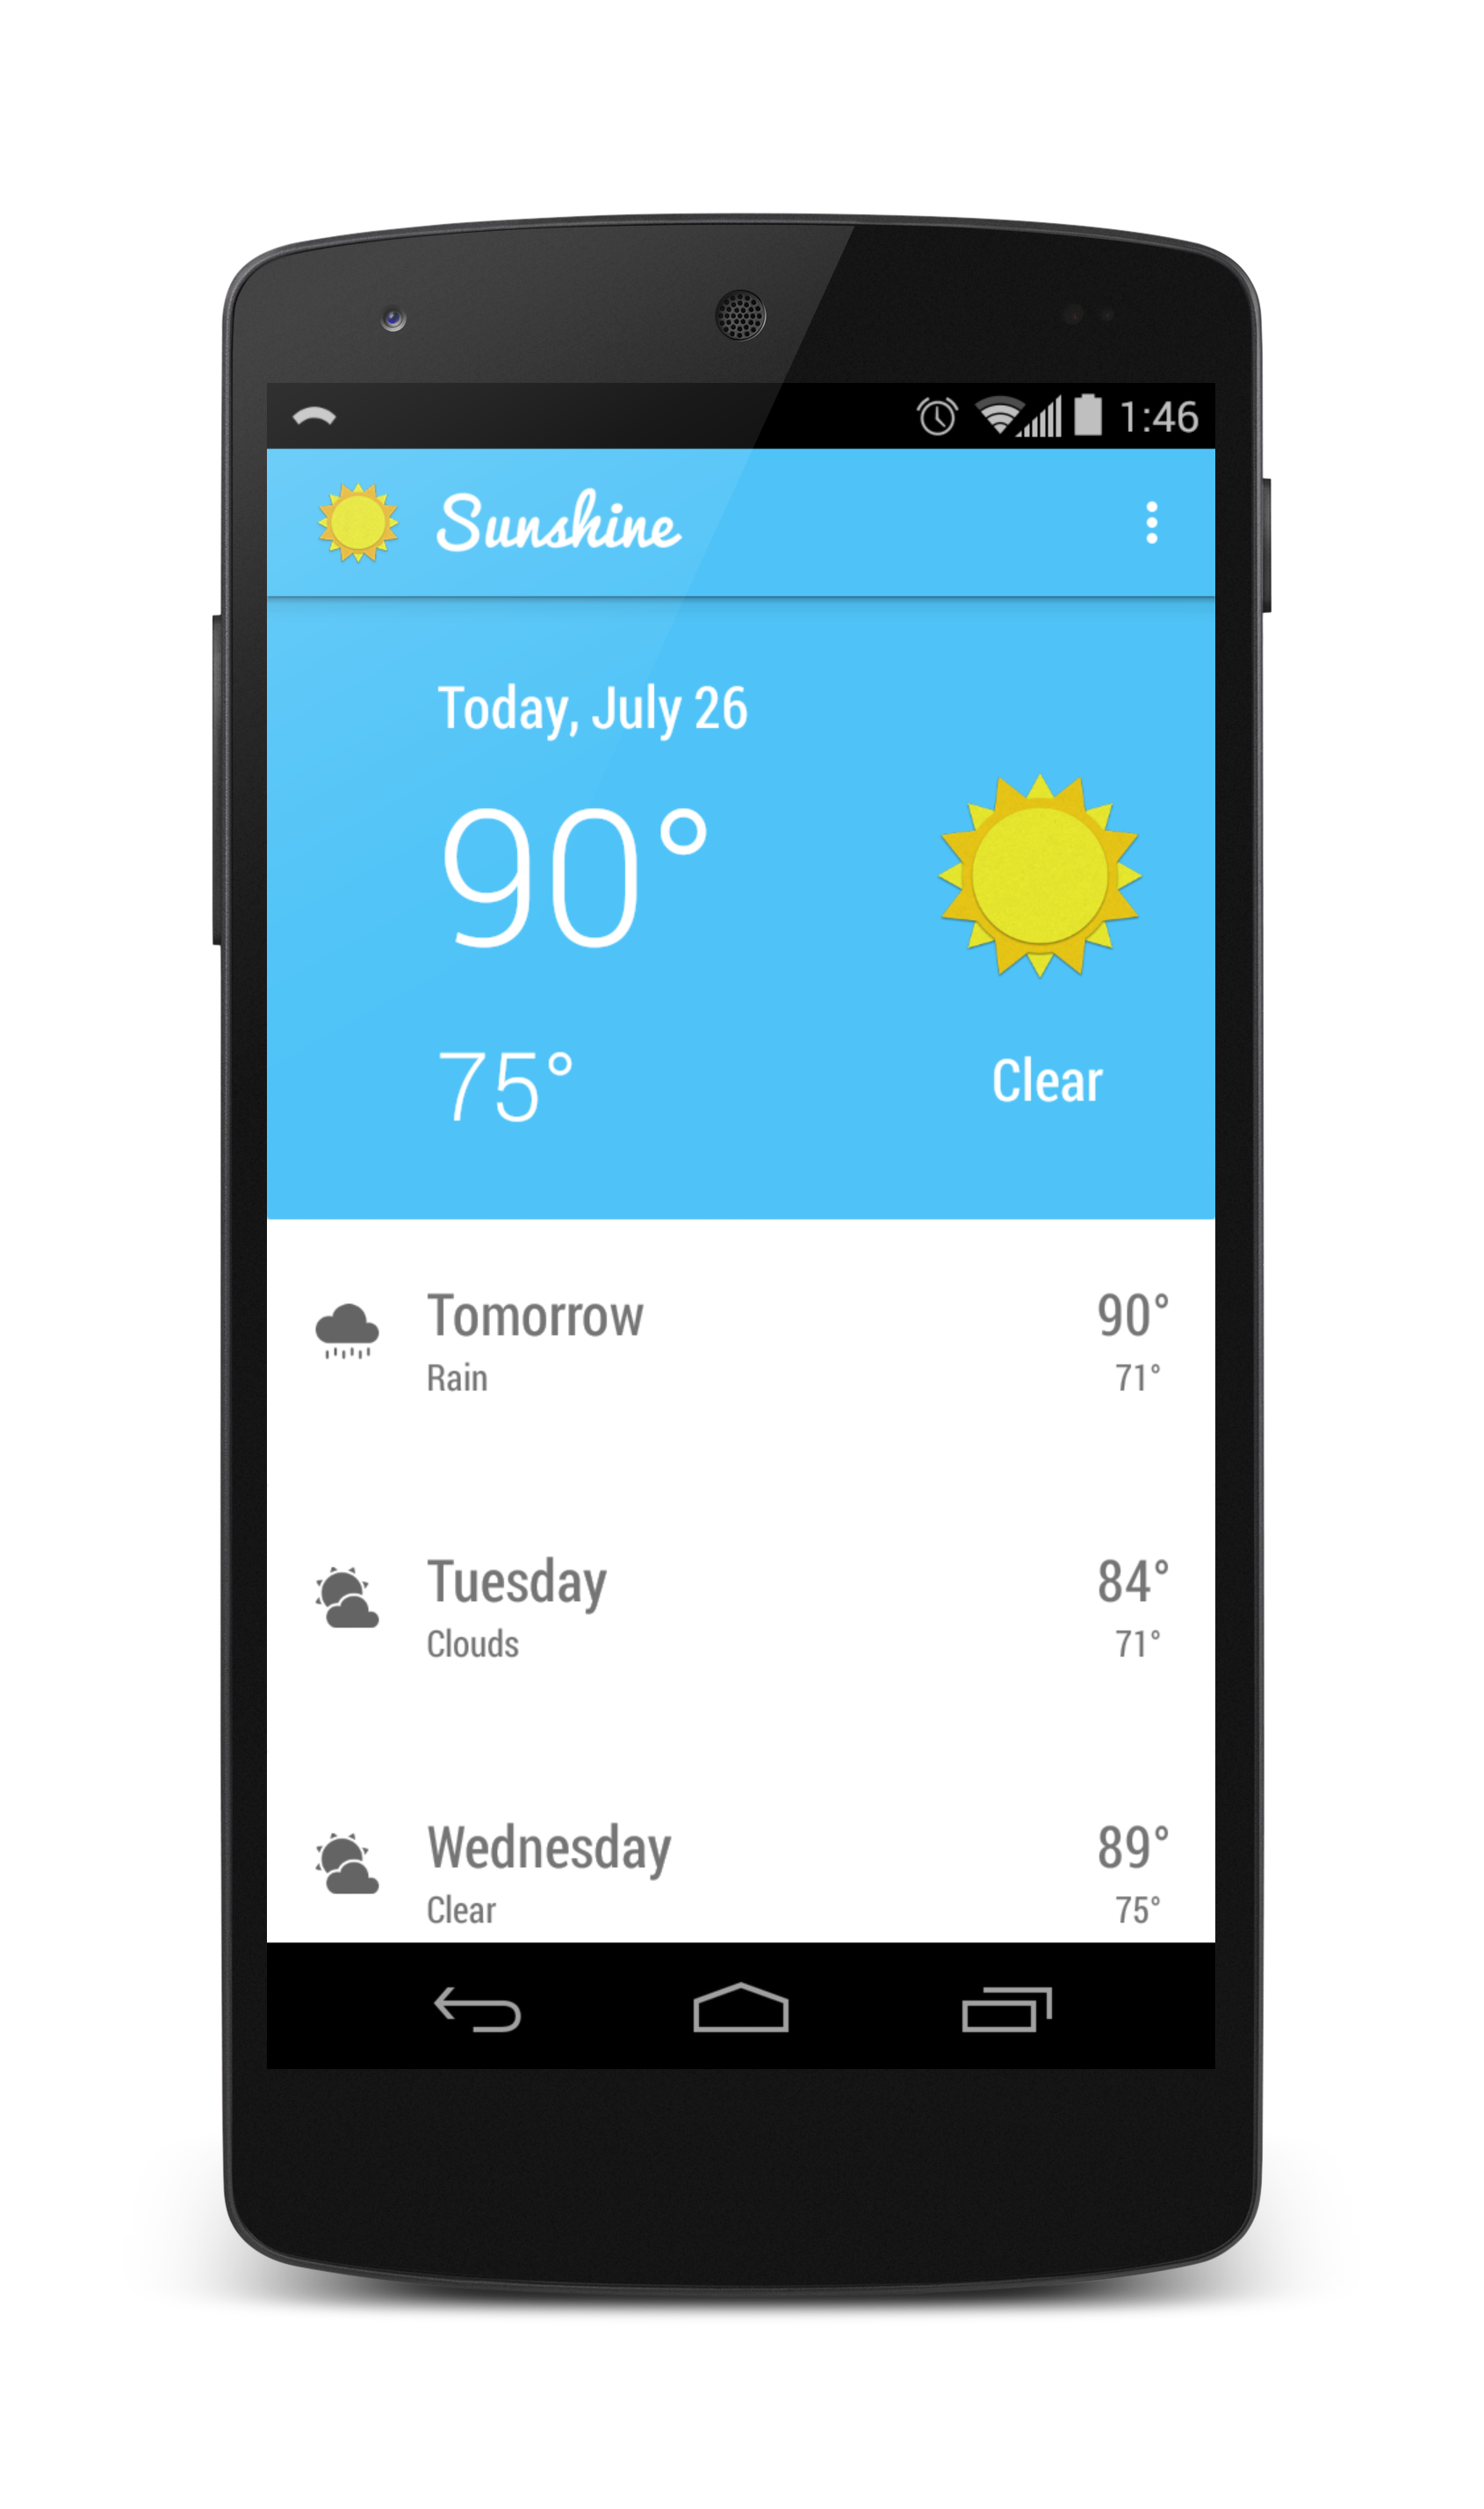 GitHub - TylerMcCraw/android-weather: View a beautiful